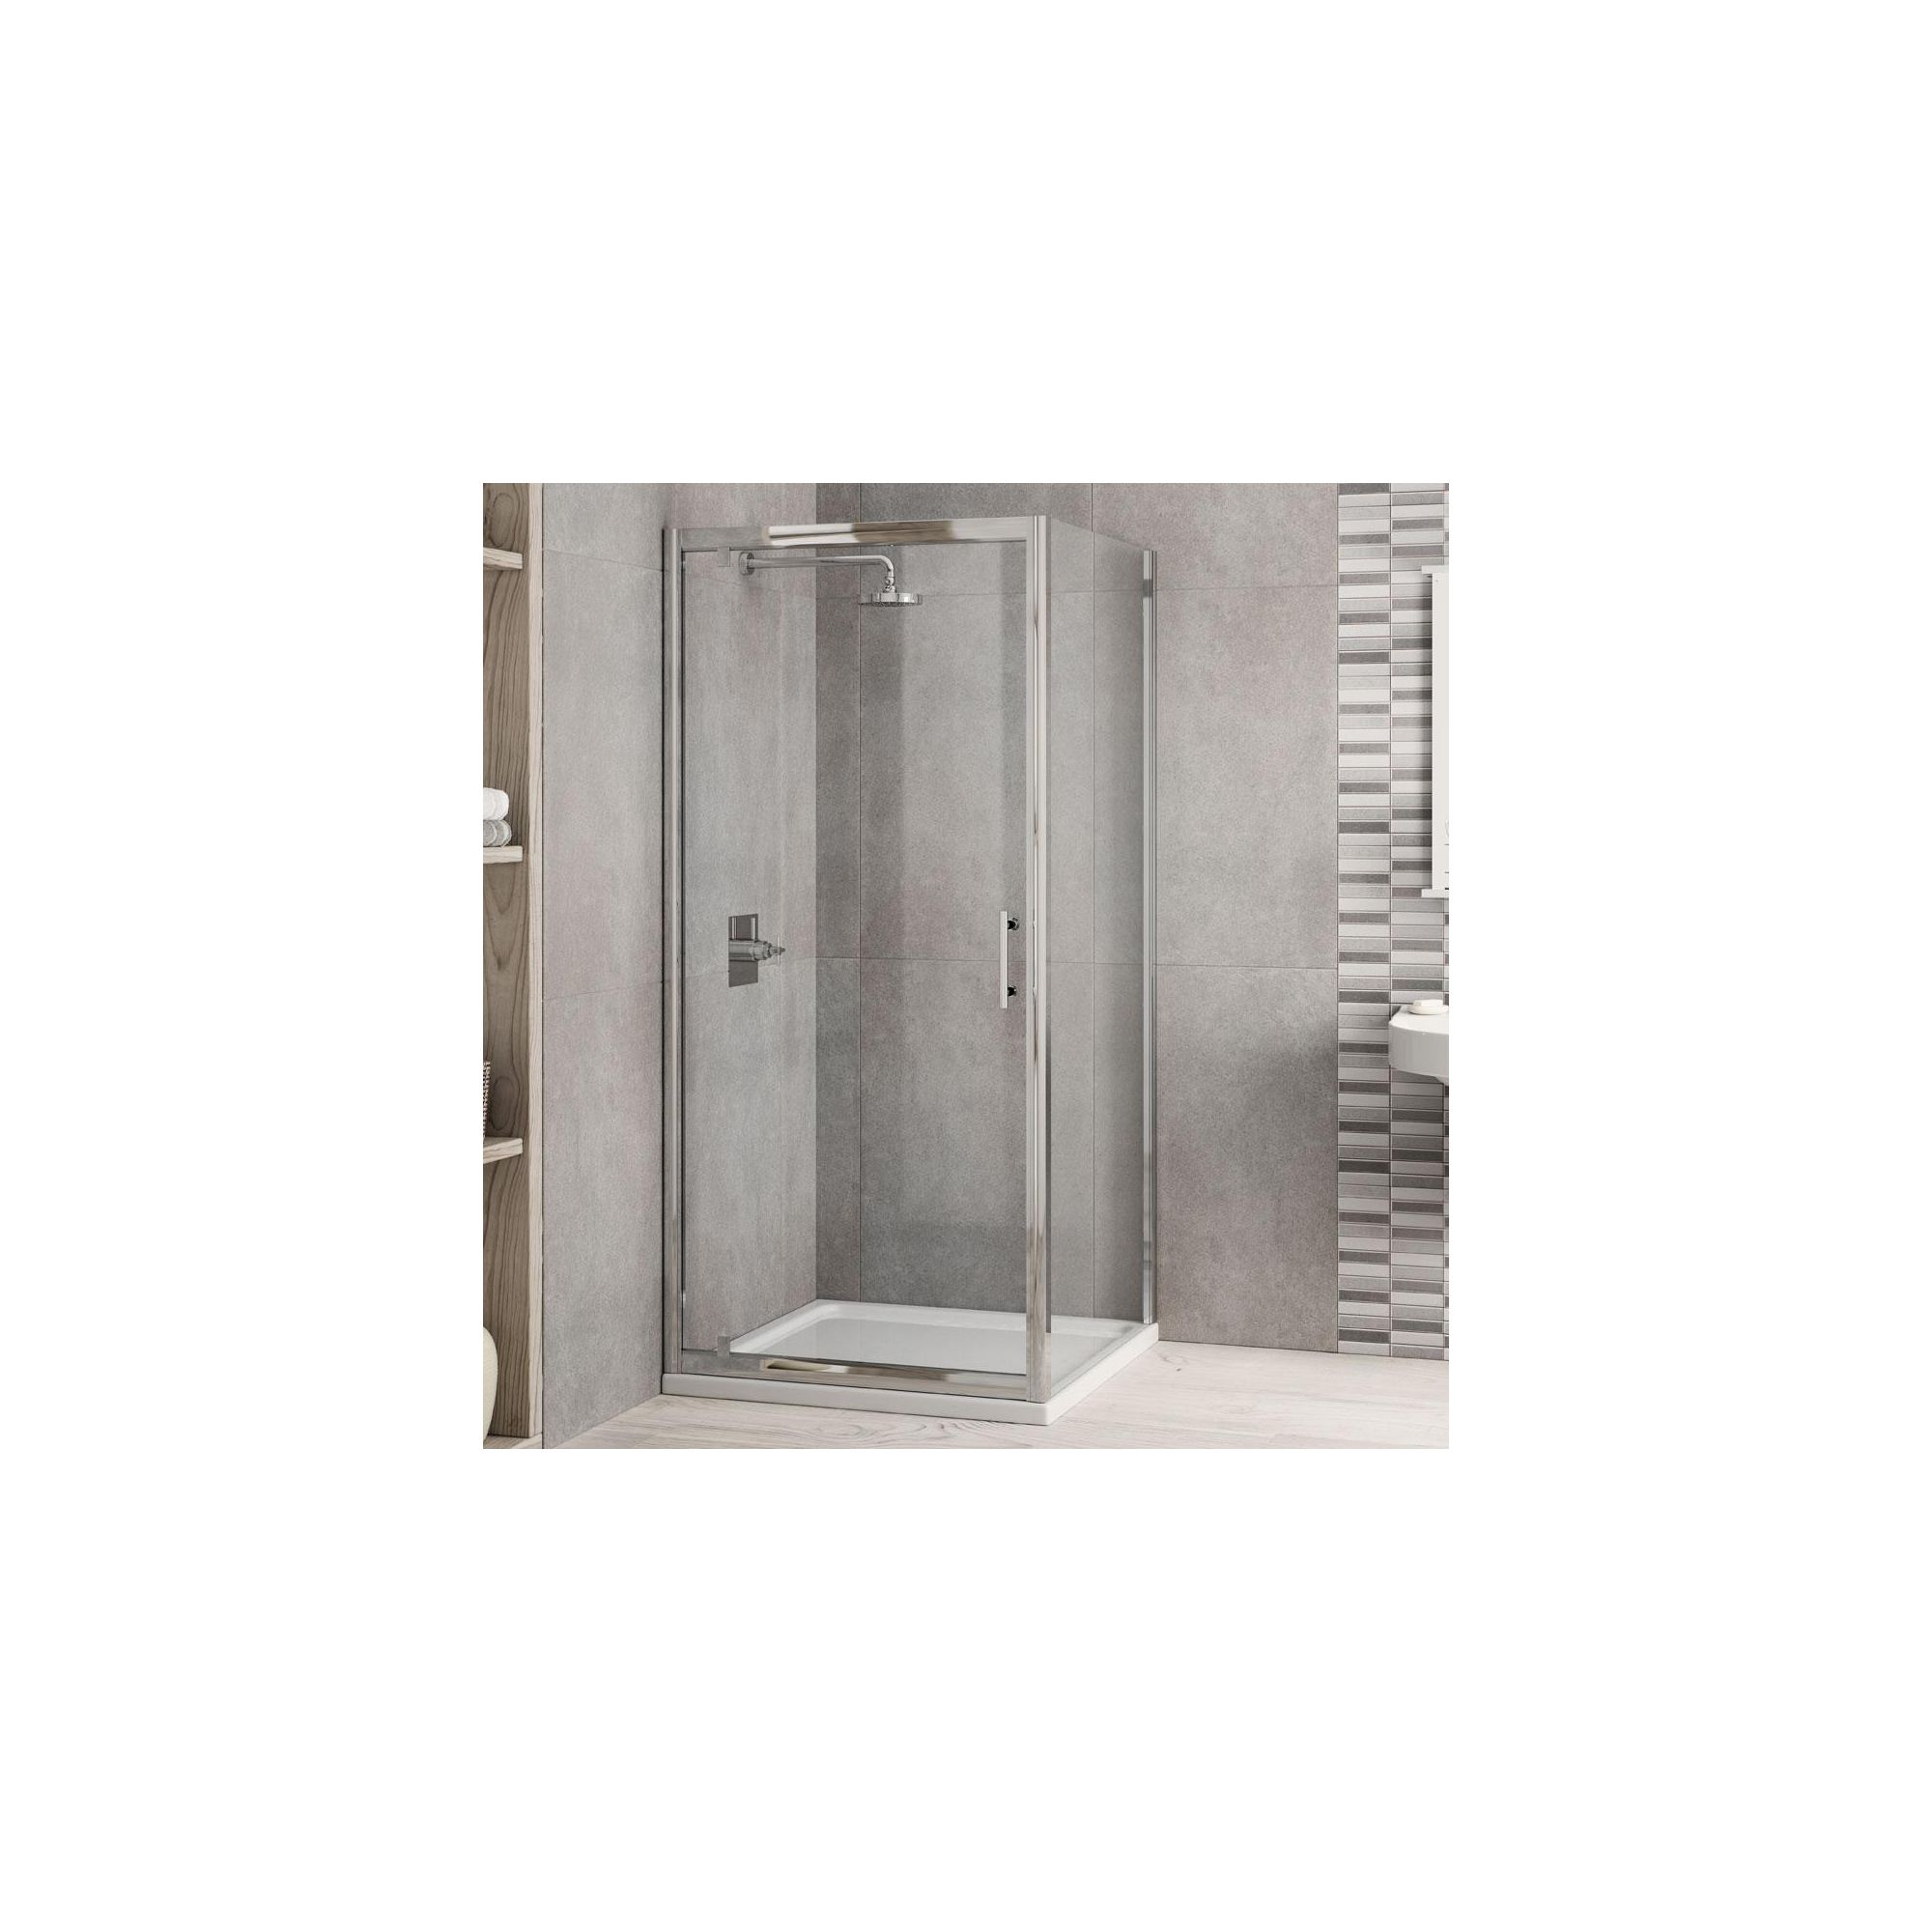 Elemis Inspire Pivot Door Shower Enclosure, 1000mm x 1000mm, 6mm Glass, Low Profile Tray at Tesco Direct